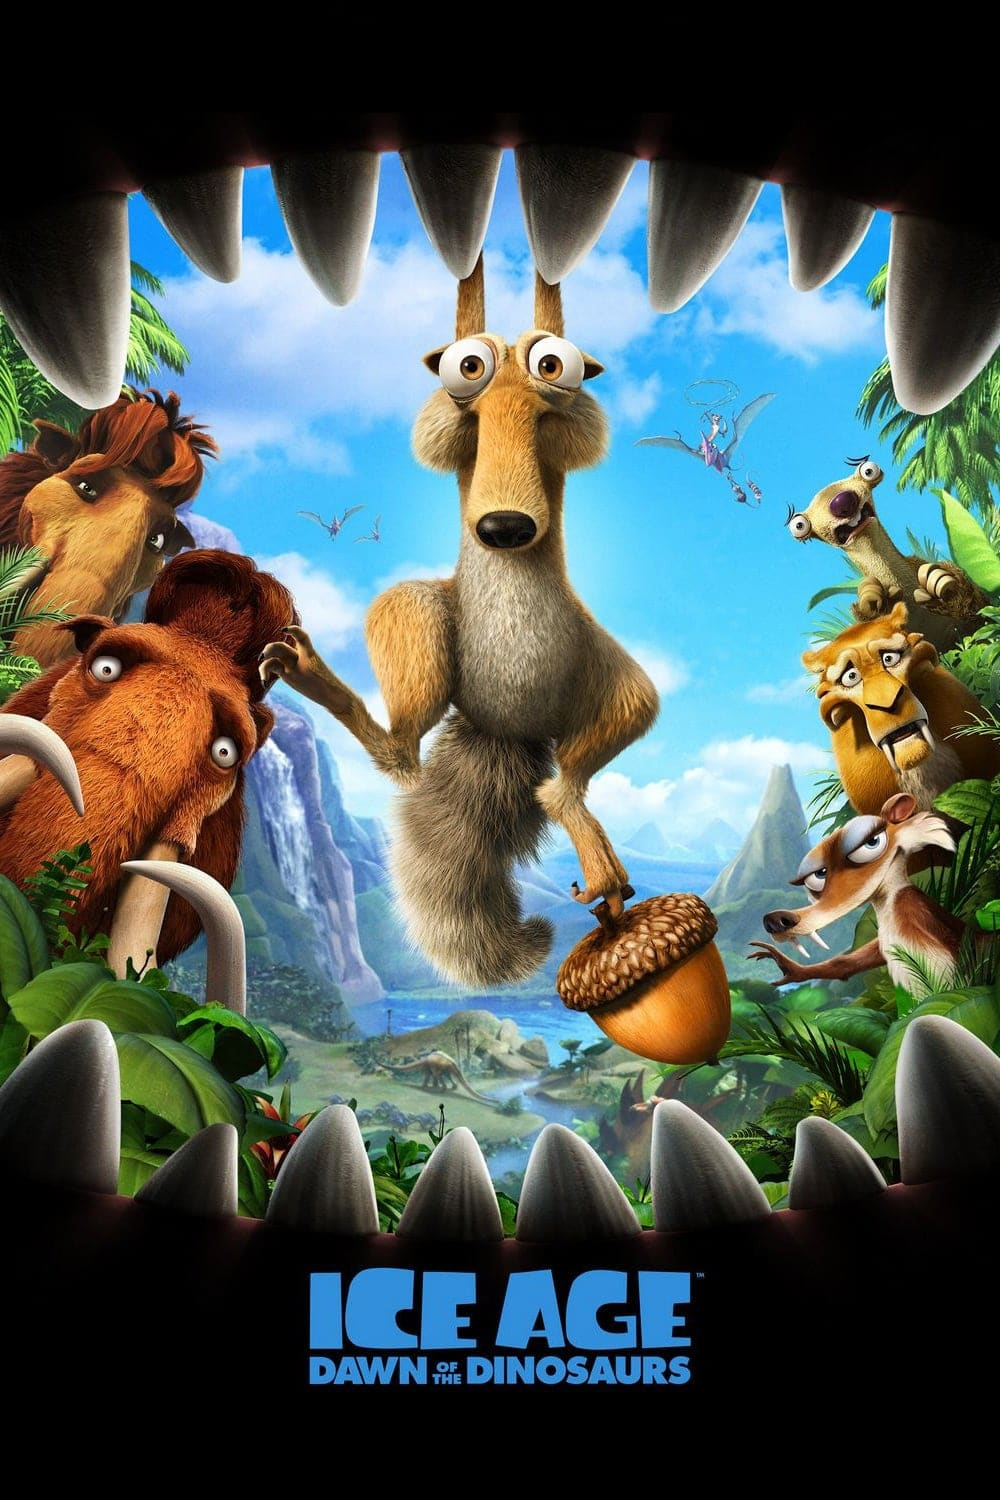 ice age poster part 3 2009 dawn of dinosuars high quality HD printable wallpapers scrat with acorn fighting to dinosaur